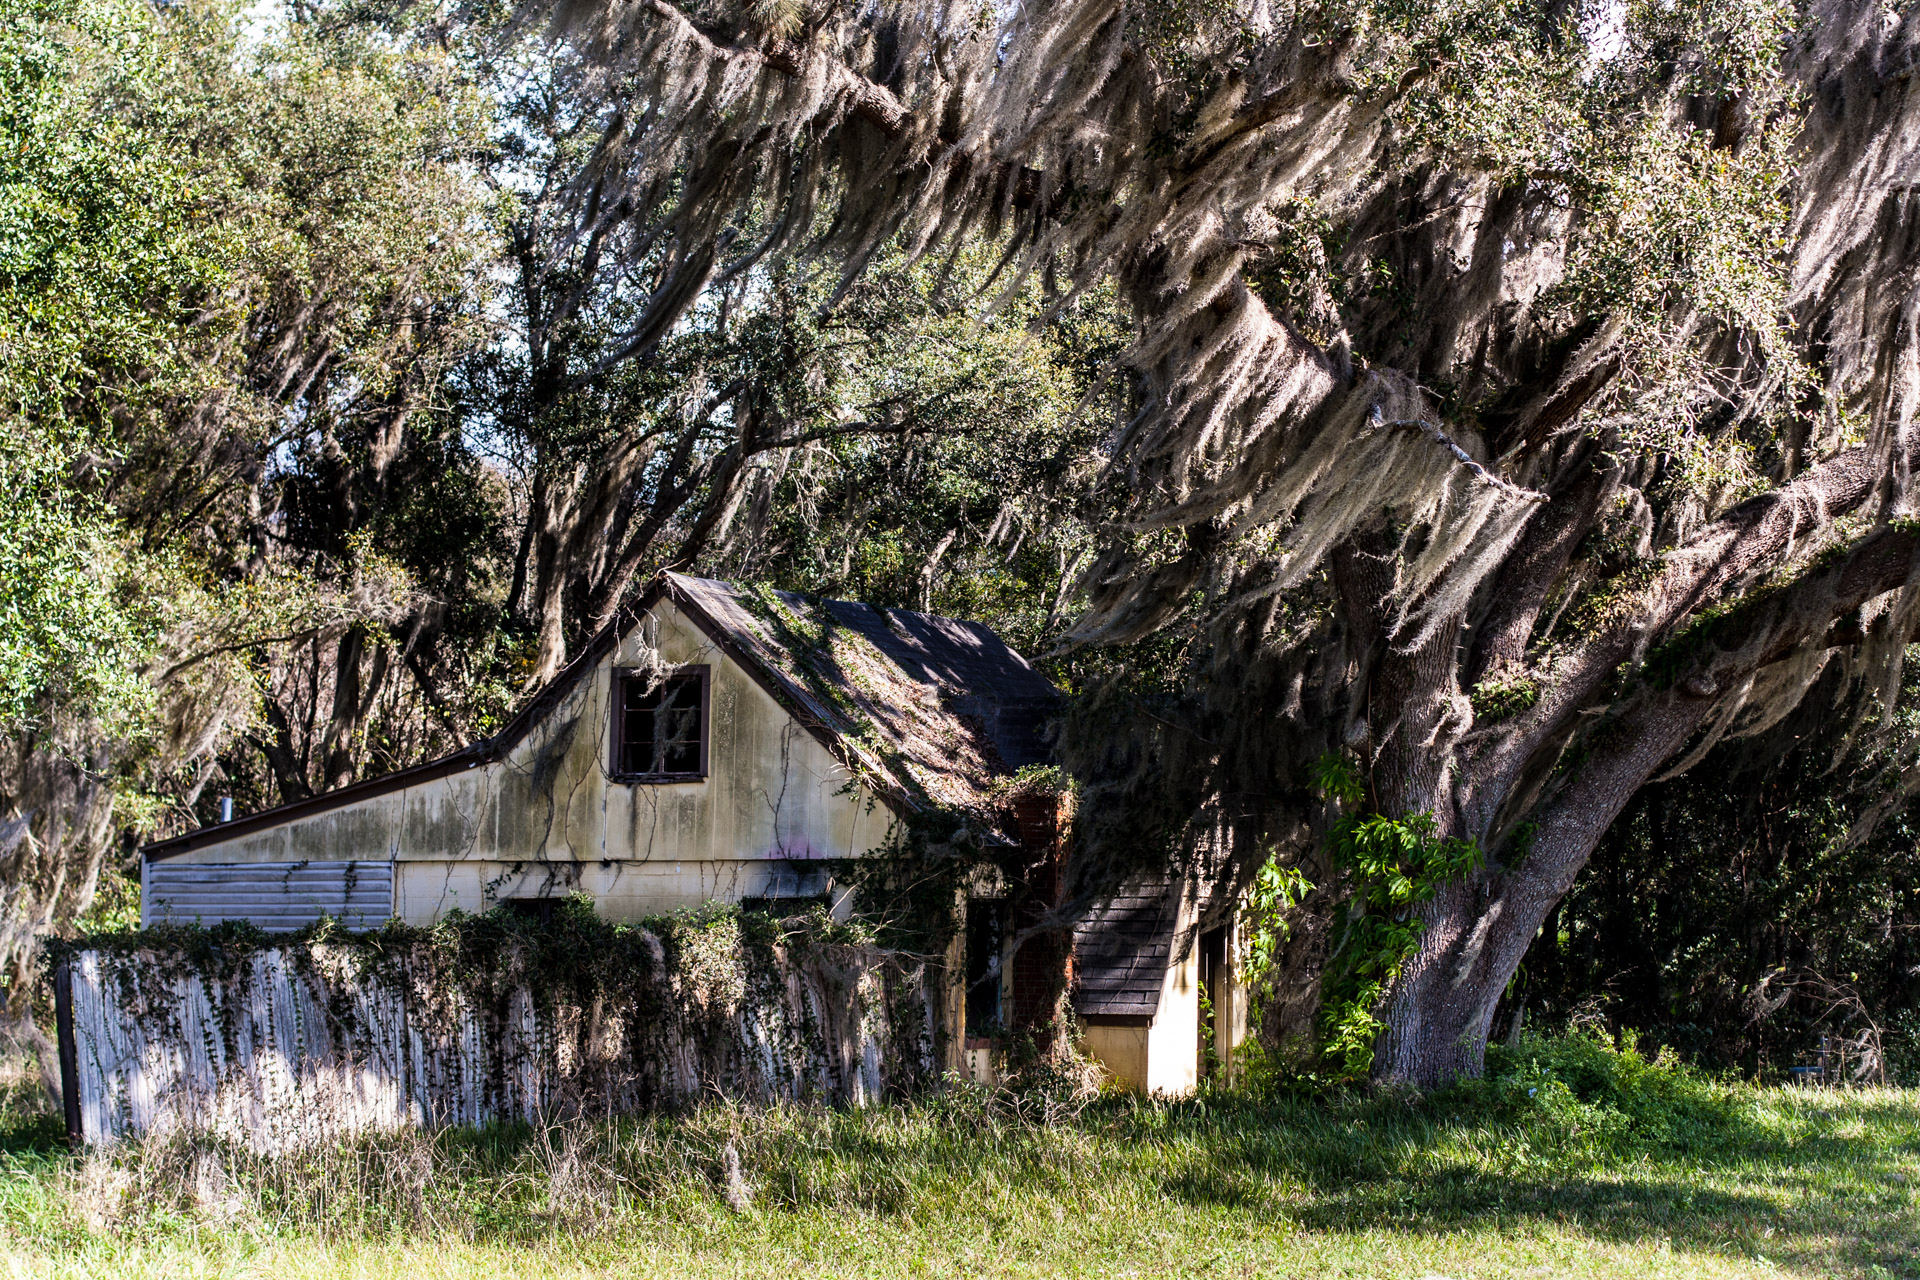 Leesburg, Florida - Wispy Tree House (side far)